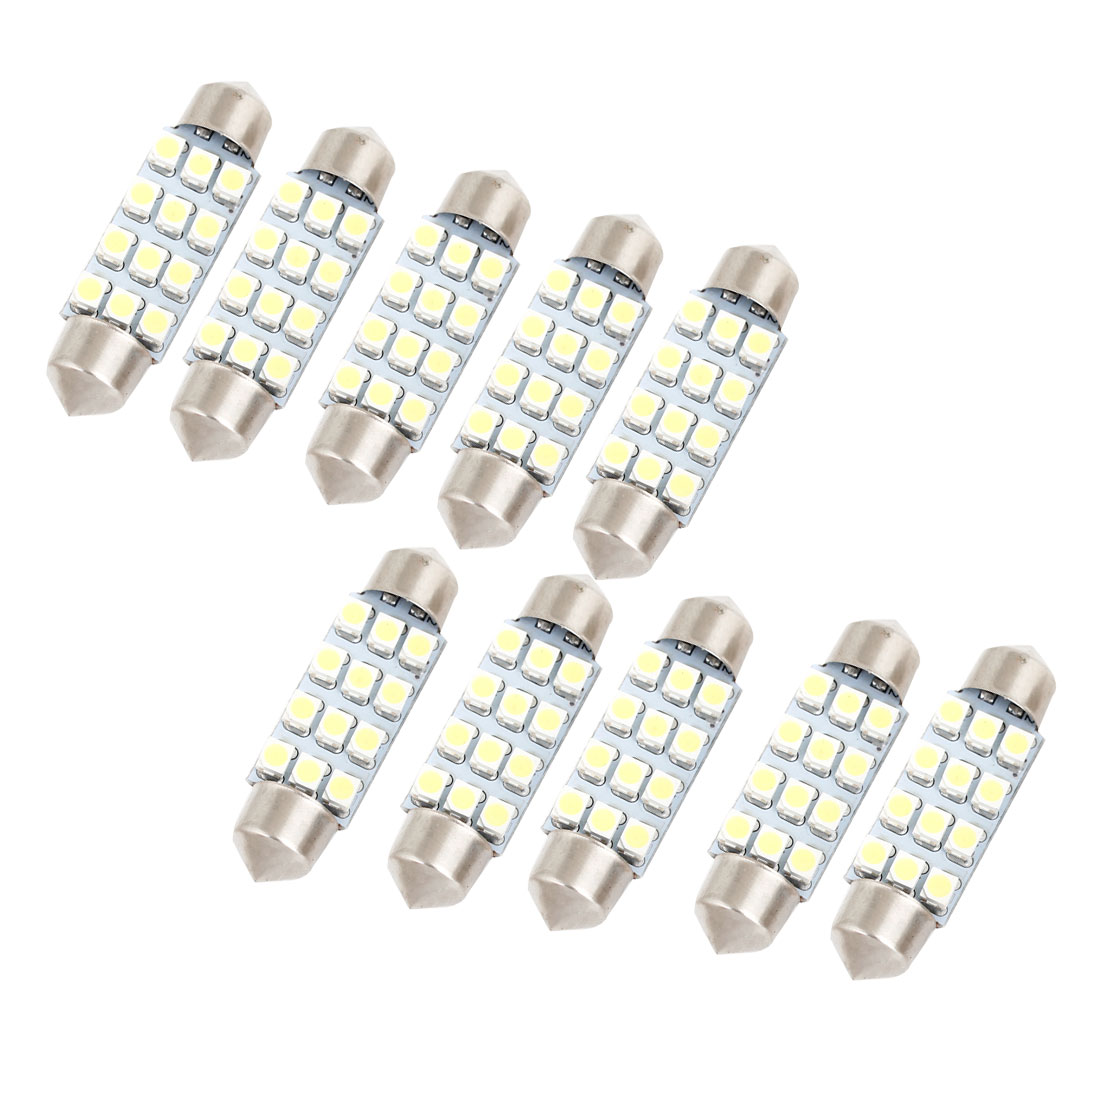 10x 41mm White 12 LED 3528 SMD Festoon Light Bulb 214-2 212-2 560 for Auto internal